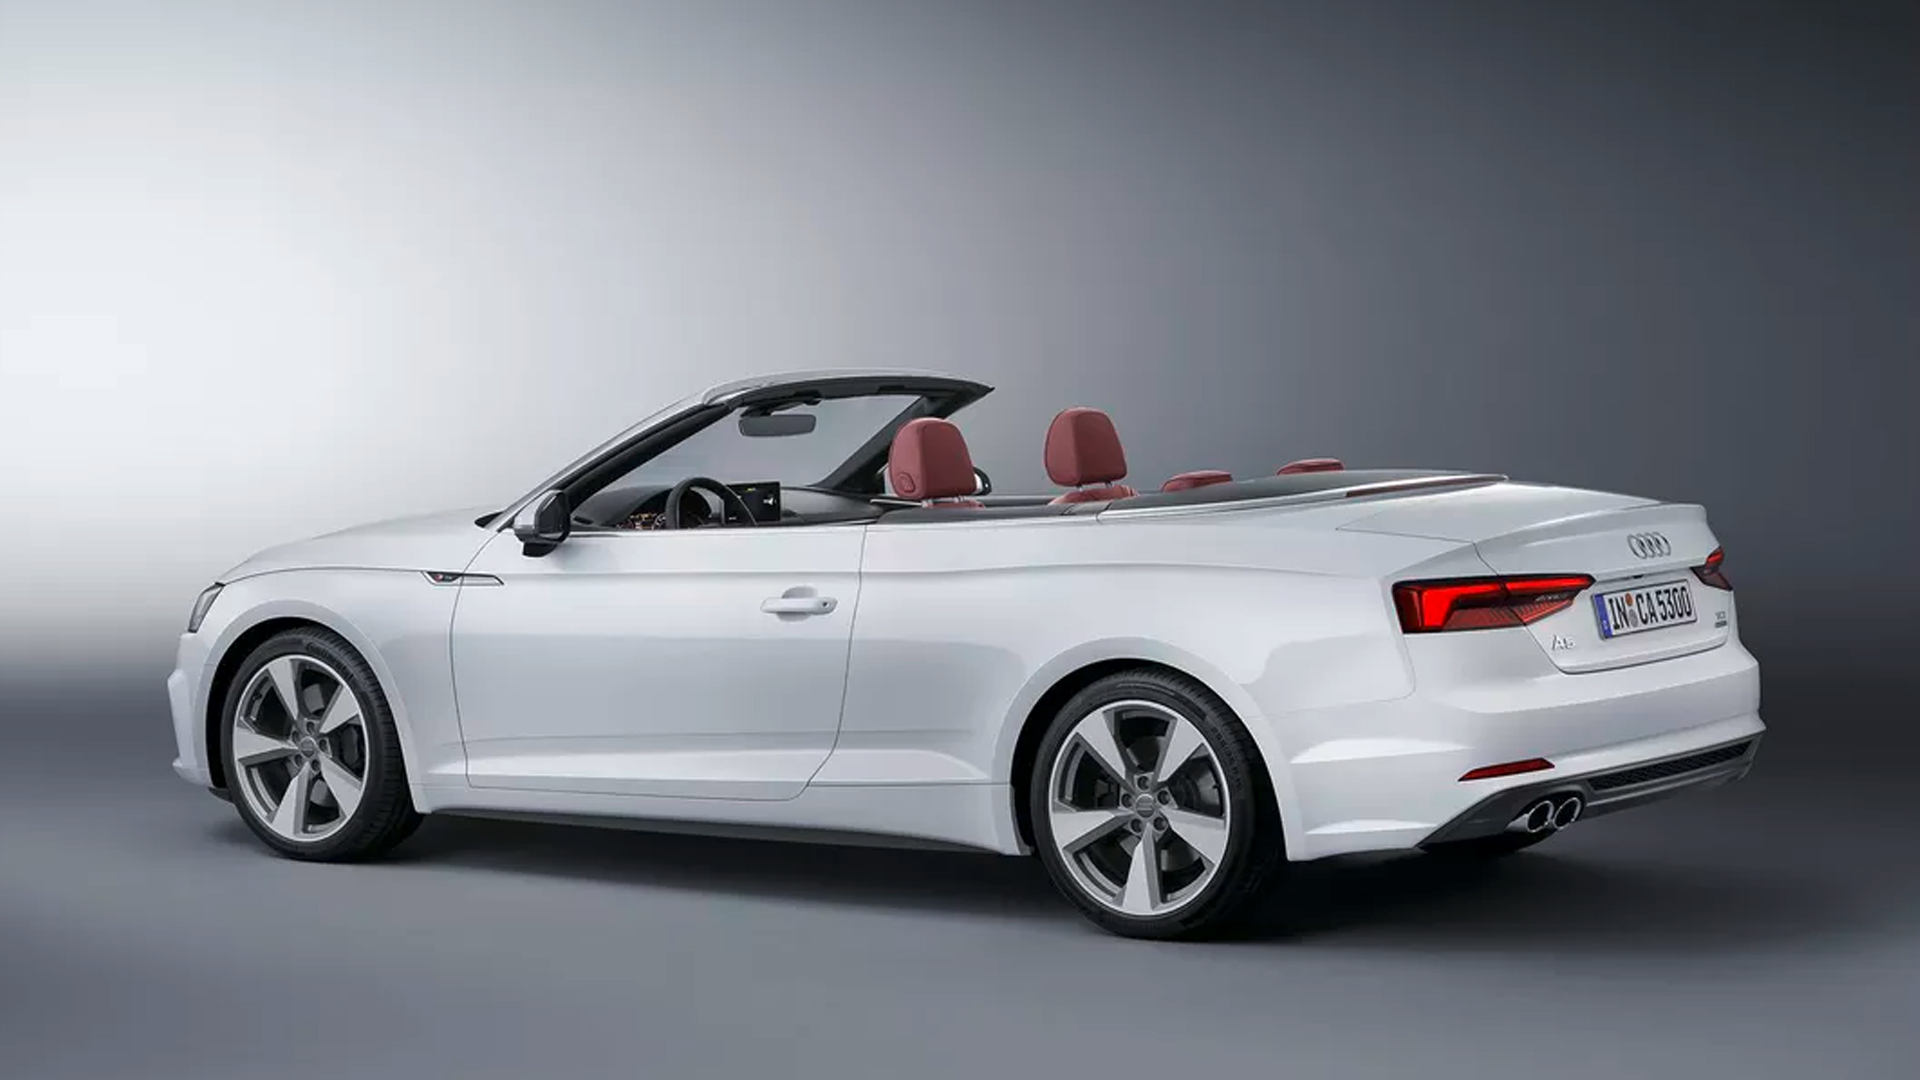 audi a5 cabriolet 2017 price mileage reviews specification gallery overdrive. Black Bedroom Furniture Sets. Home Design Ideas